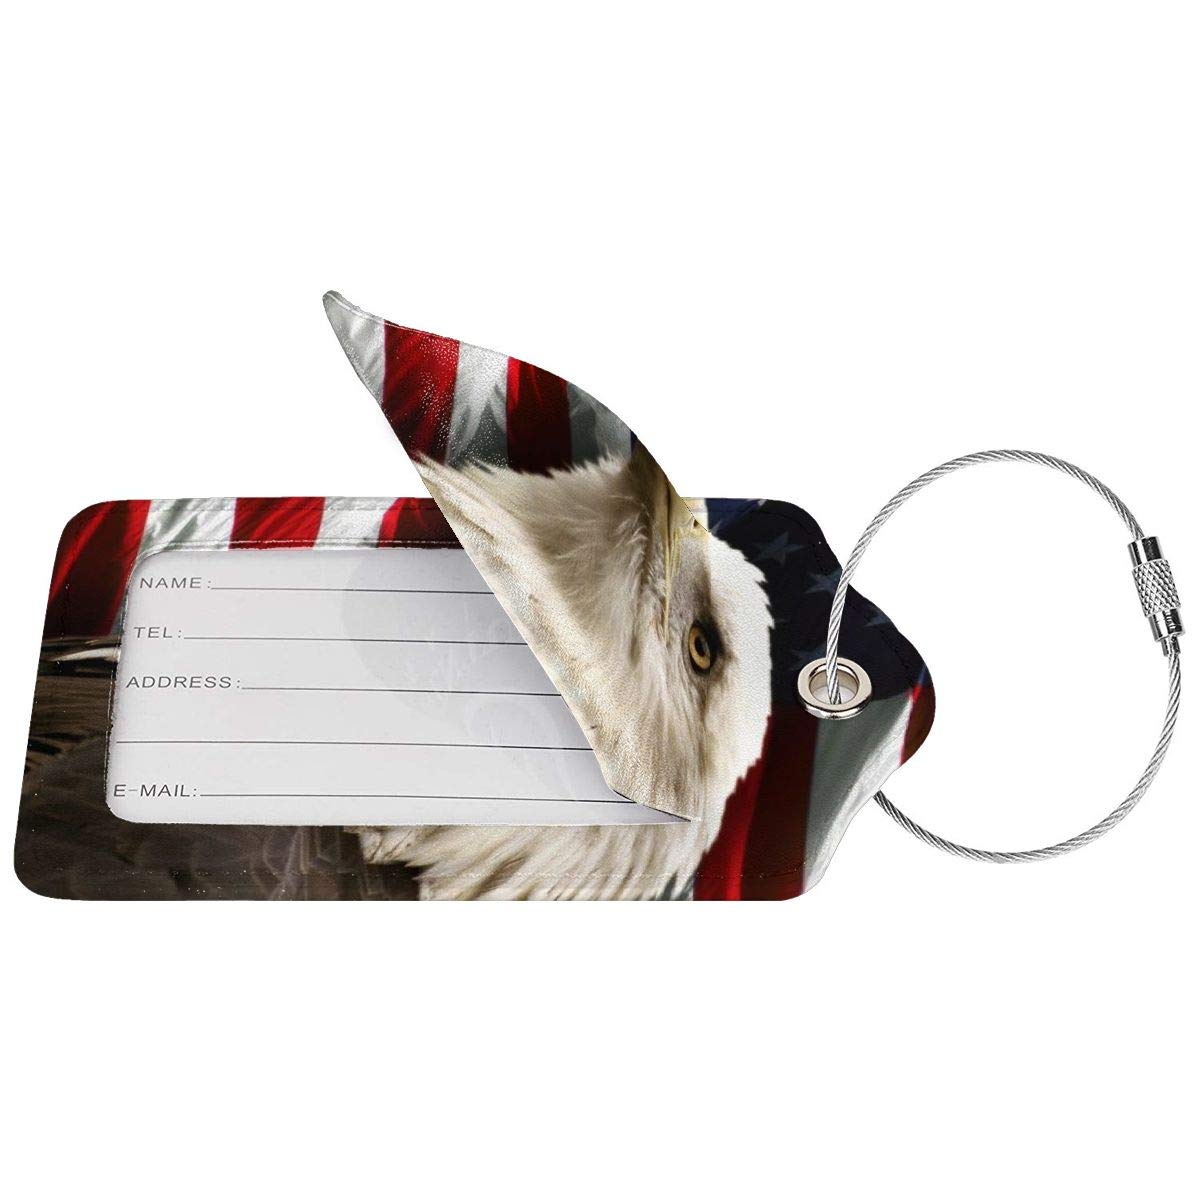 Bald Eagle American Flag Luggage Tag Label Travel Bag Label With Privacy Cover Luggage Tag Leather Personalized Suitcase Tag Travel Accessories